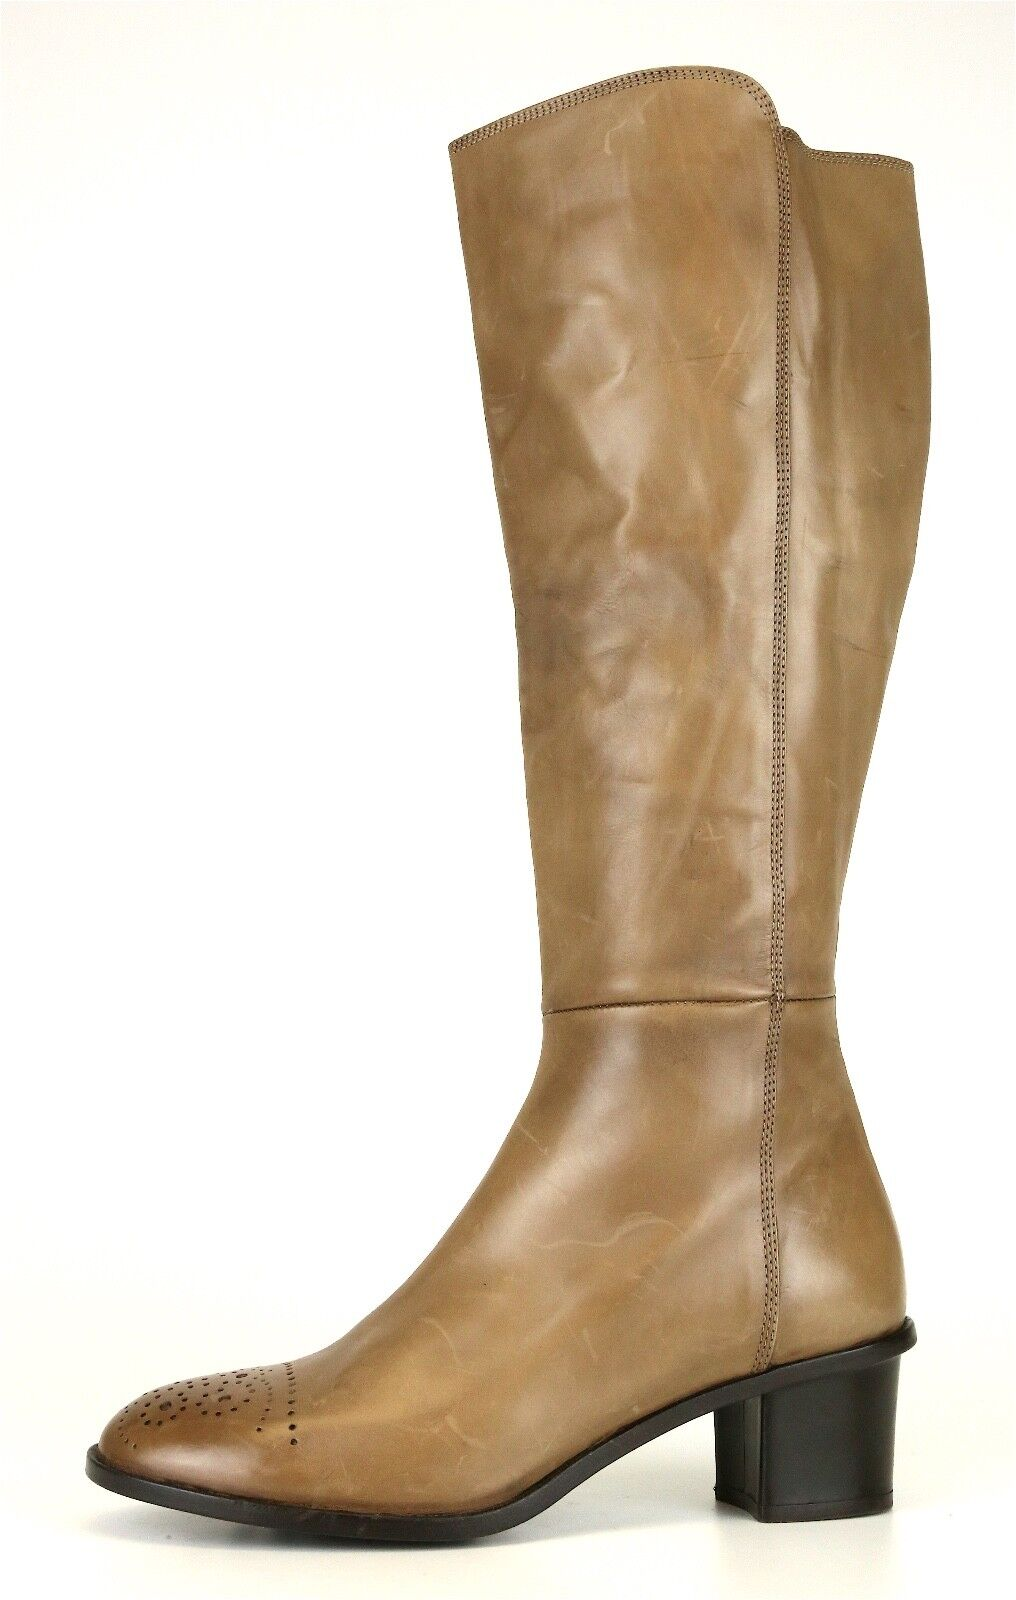 AGL Tall Leather Side Zip Stiefel Tan damen Sz 41.5 EUR 6644